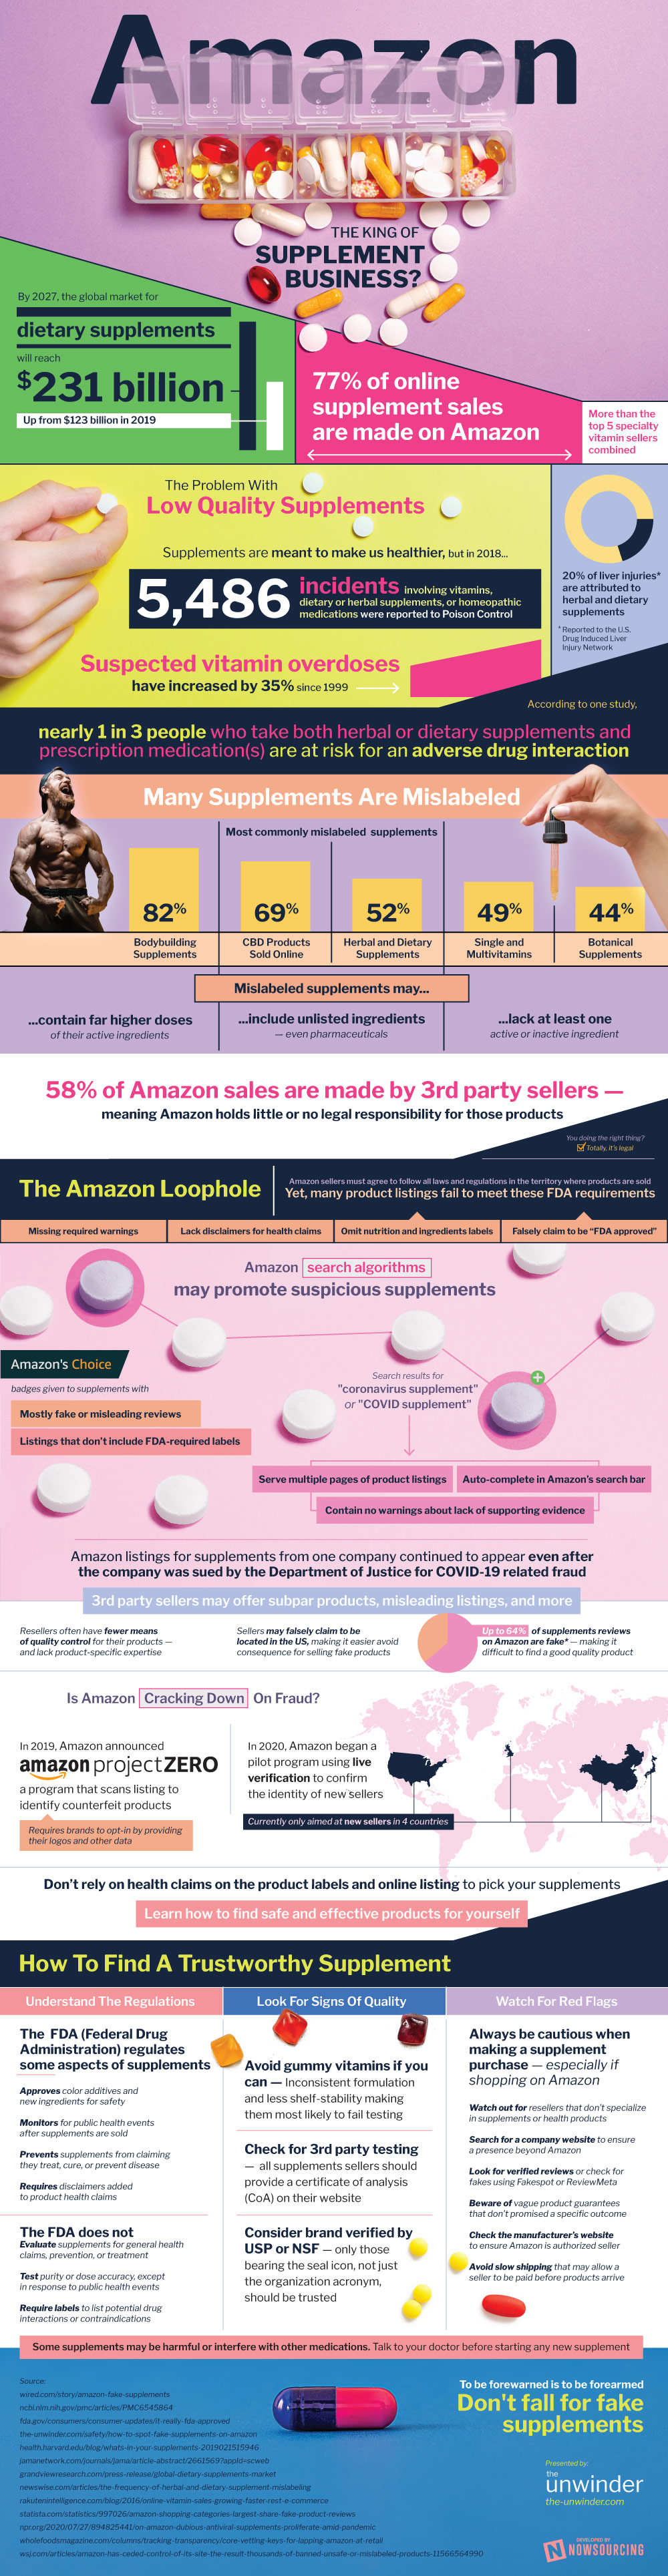 Amazon: King of the Supplements Industry (Infographic)